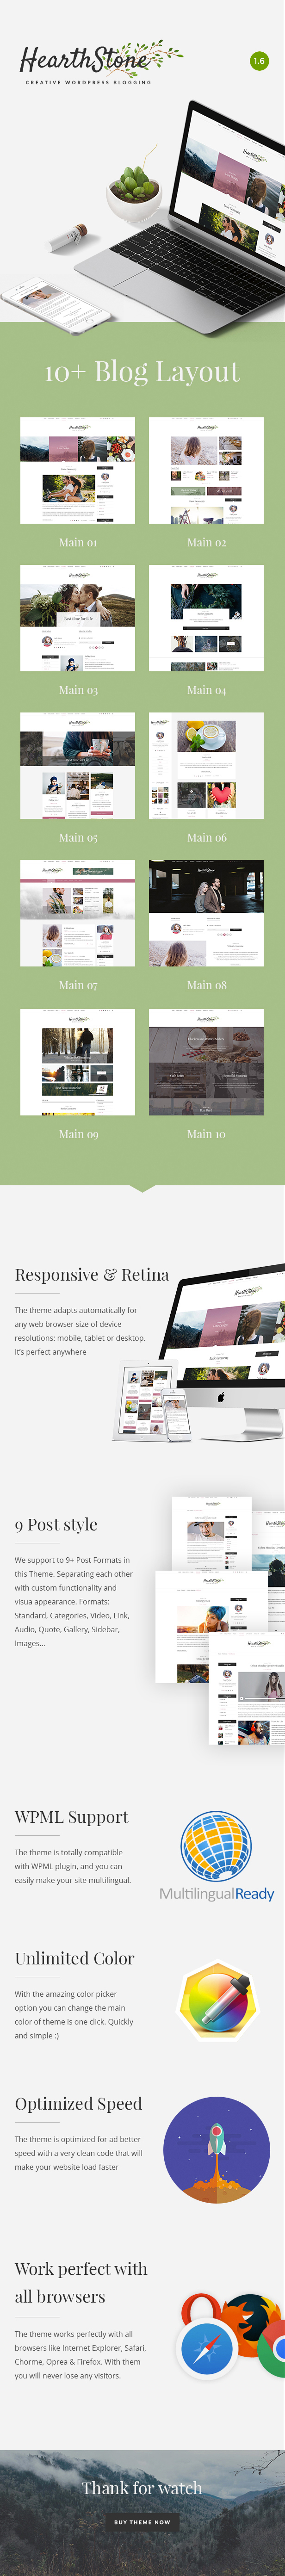 HearthStone - Responsive WordPress Blog Theme - 1